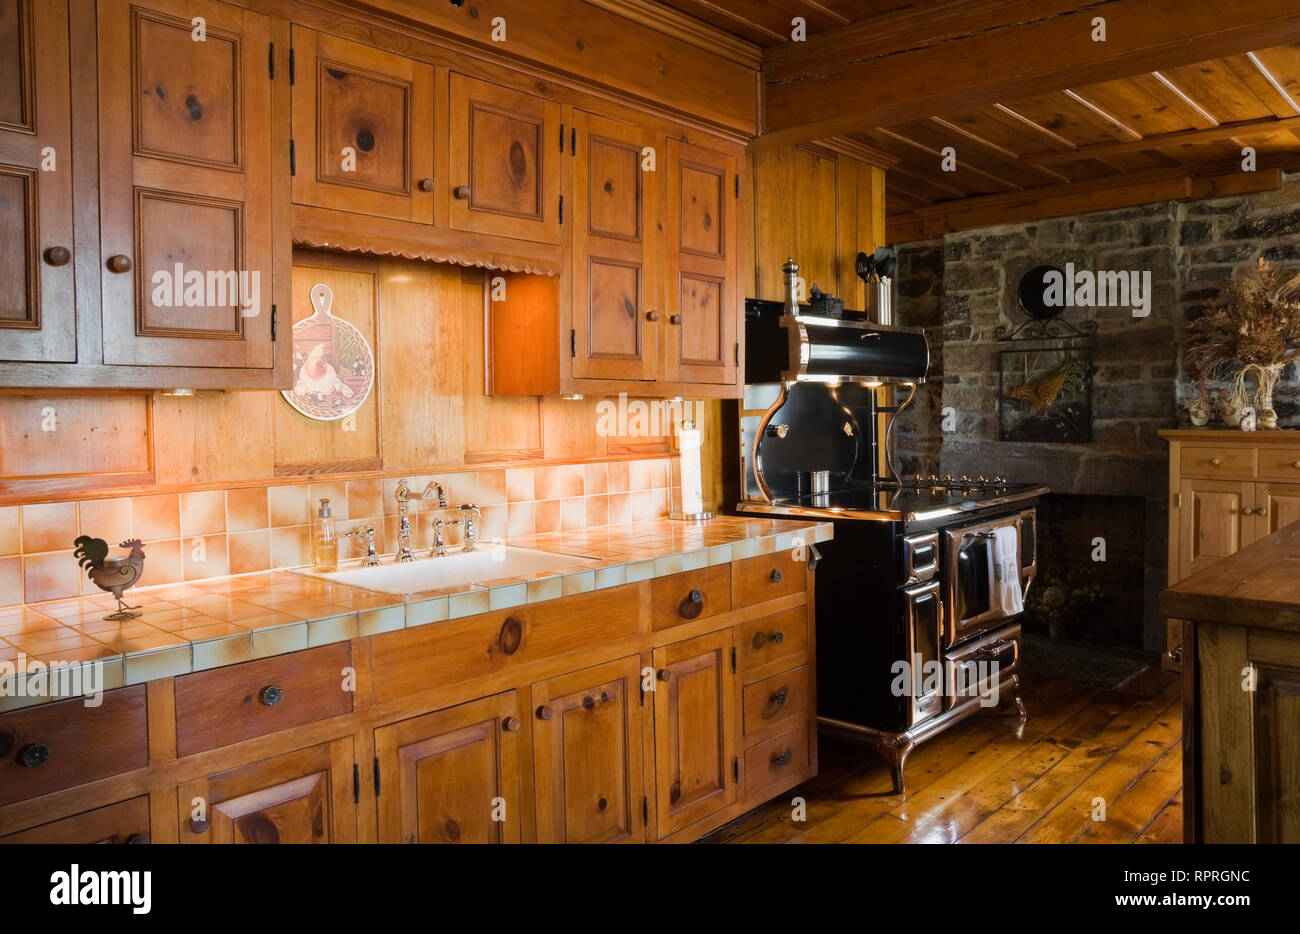 Wooden Kitchen Cupboard Cabinets And Replica Of An Antique Stove In The Kitchen Of An Old Circa 1750 Canadiana Fieldstone Home Stock Photo Alamy